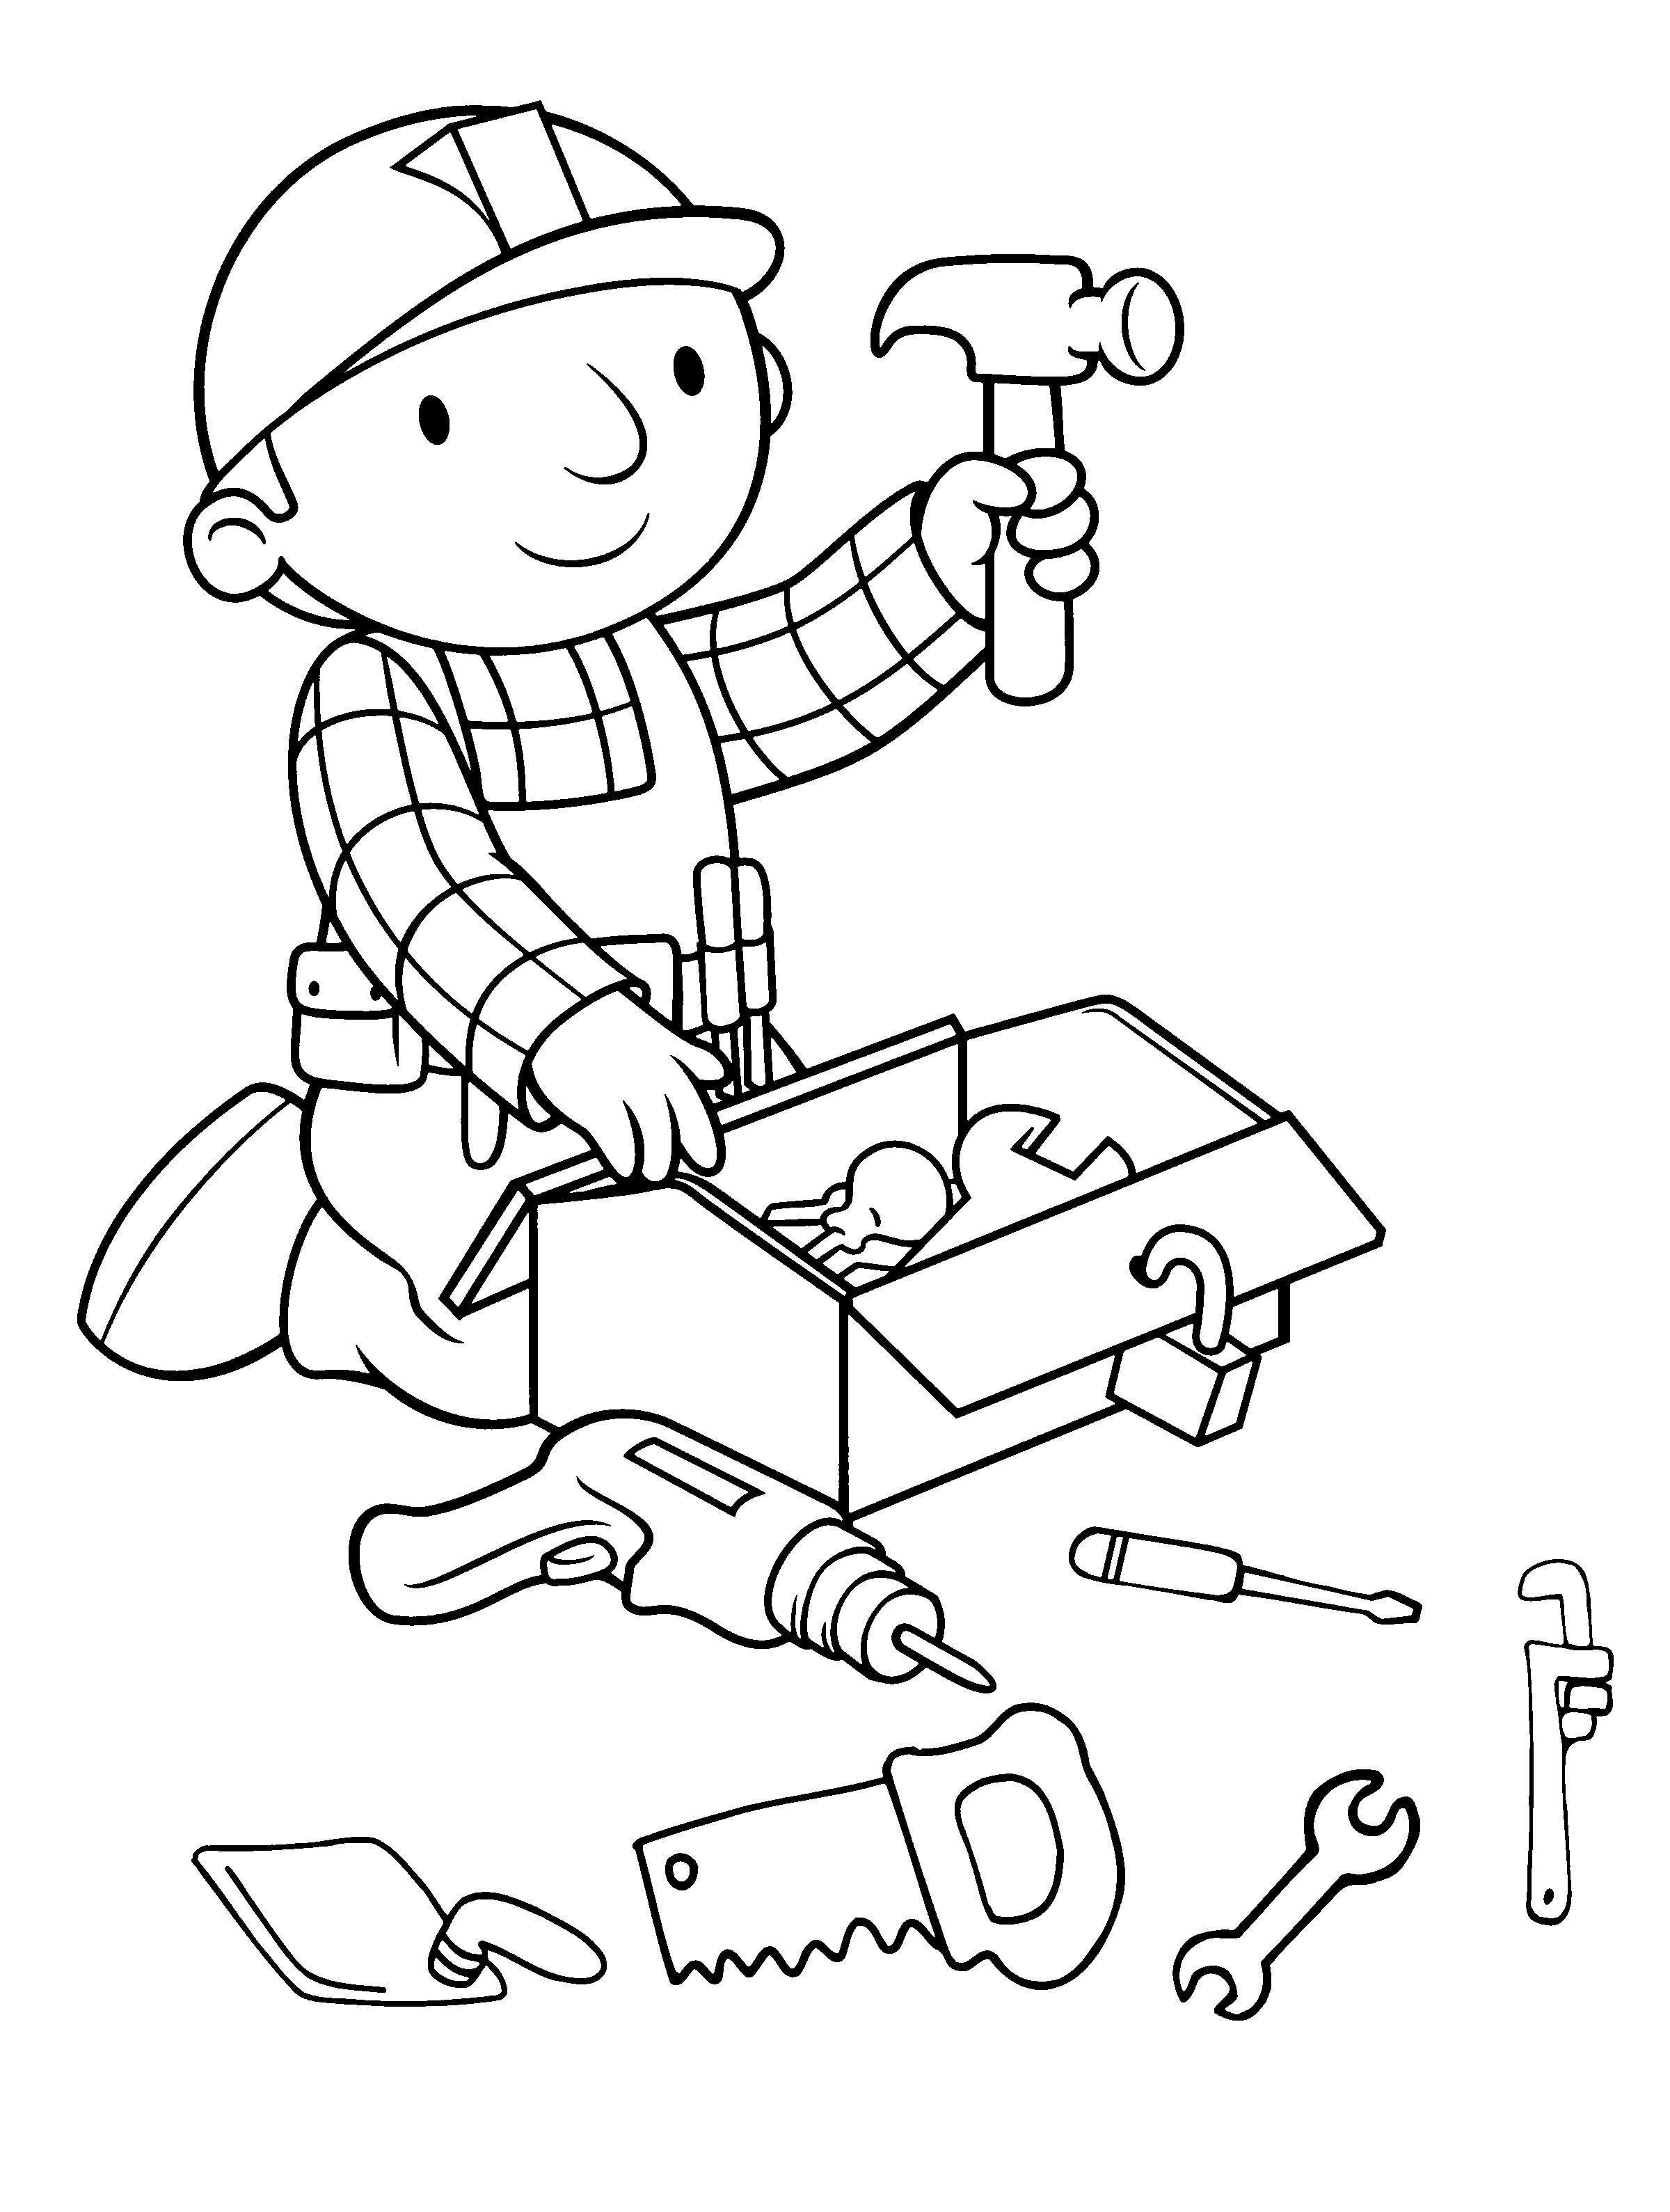 Free Bob The Builder Coloring Pages With Bob The Builder